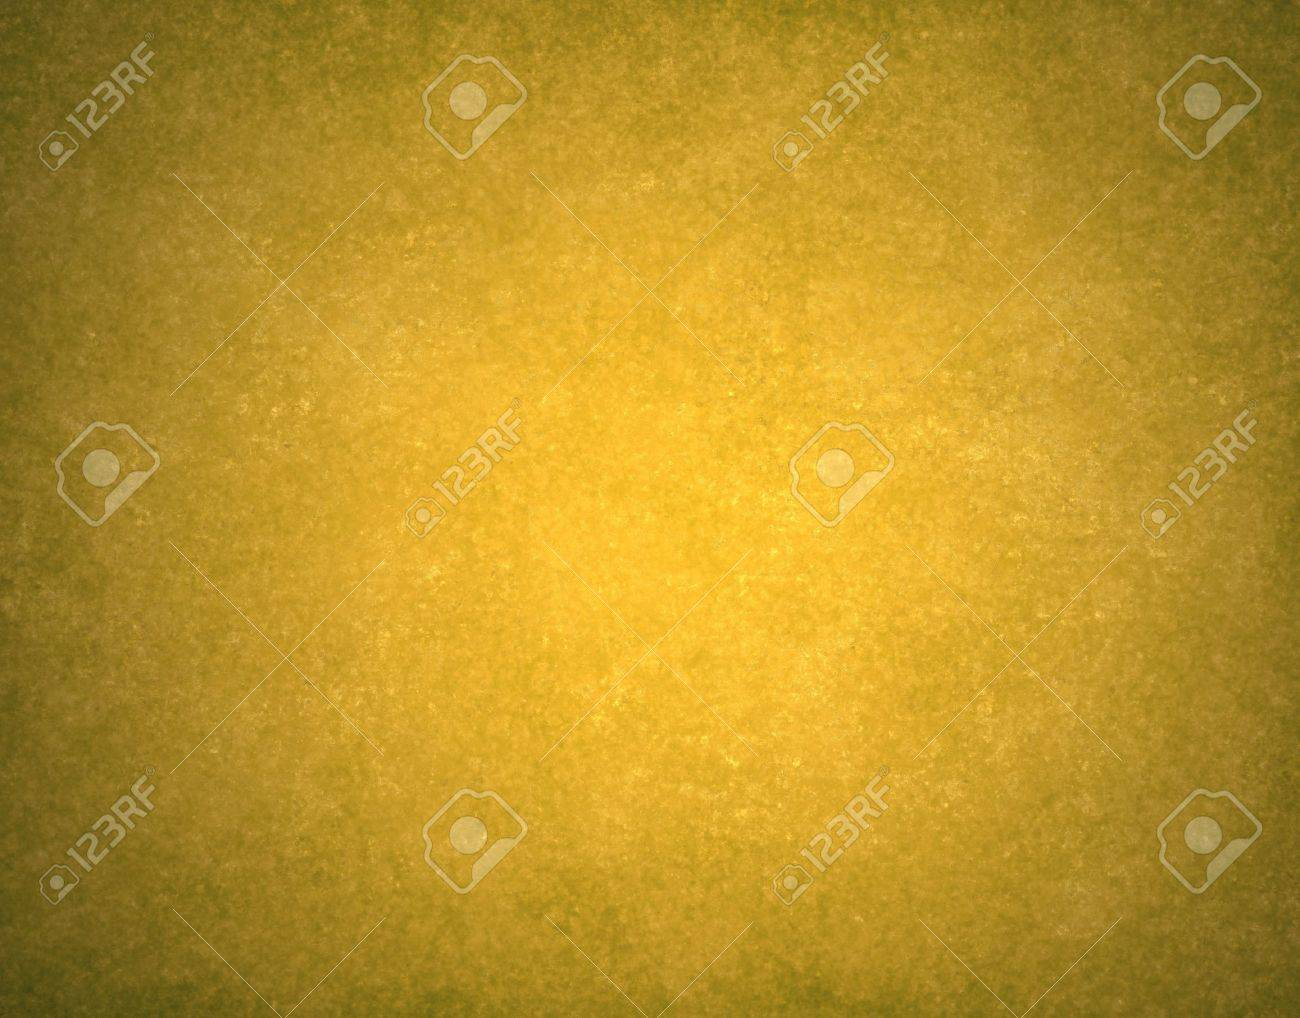 gold yellow background texture Stock Photo - 19279736